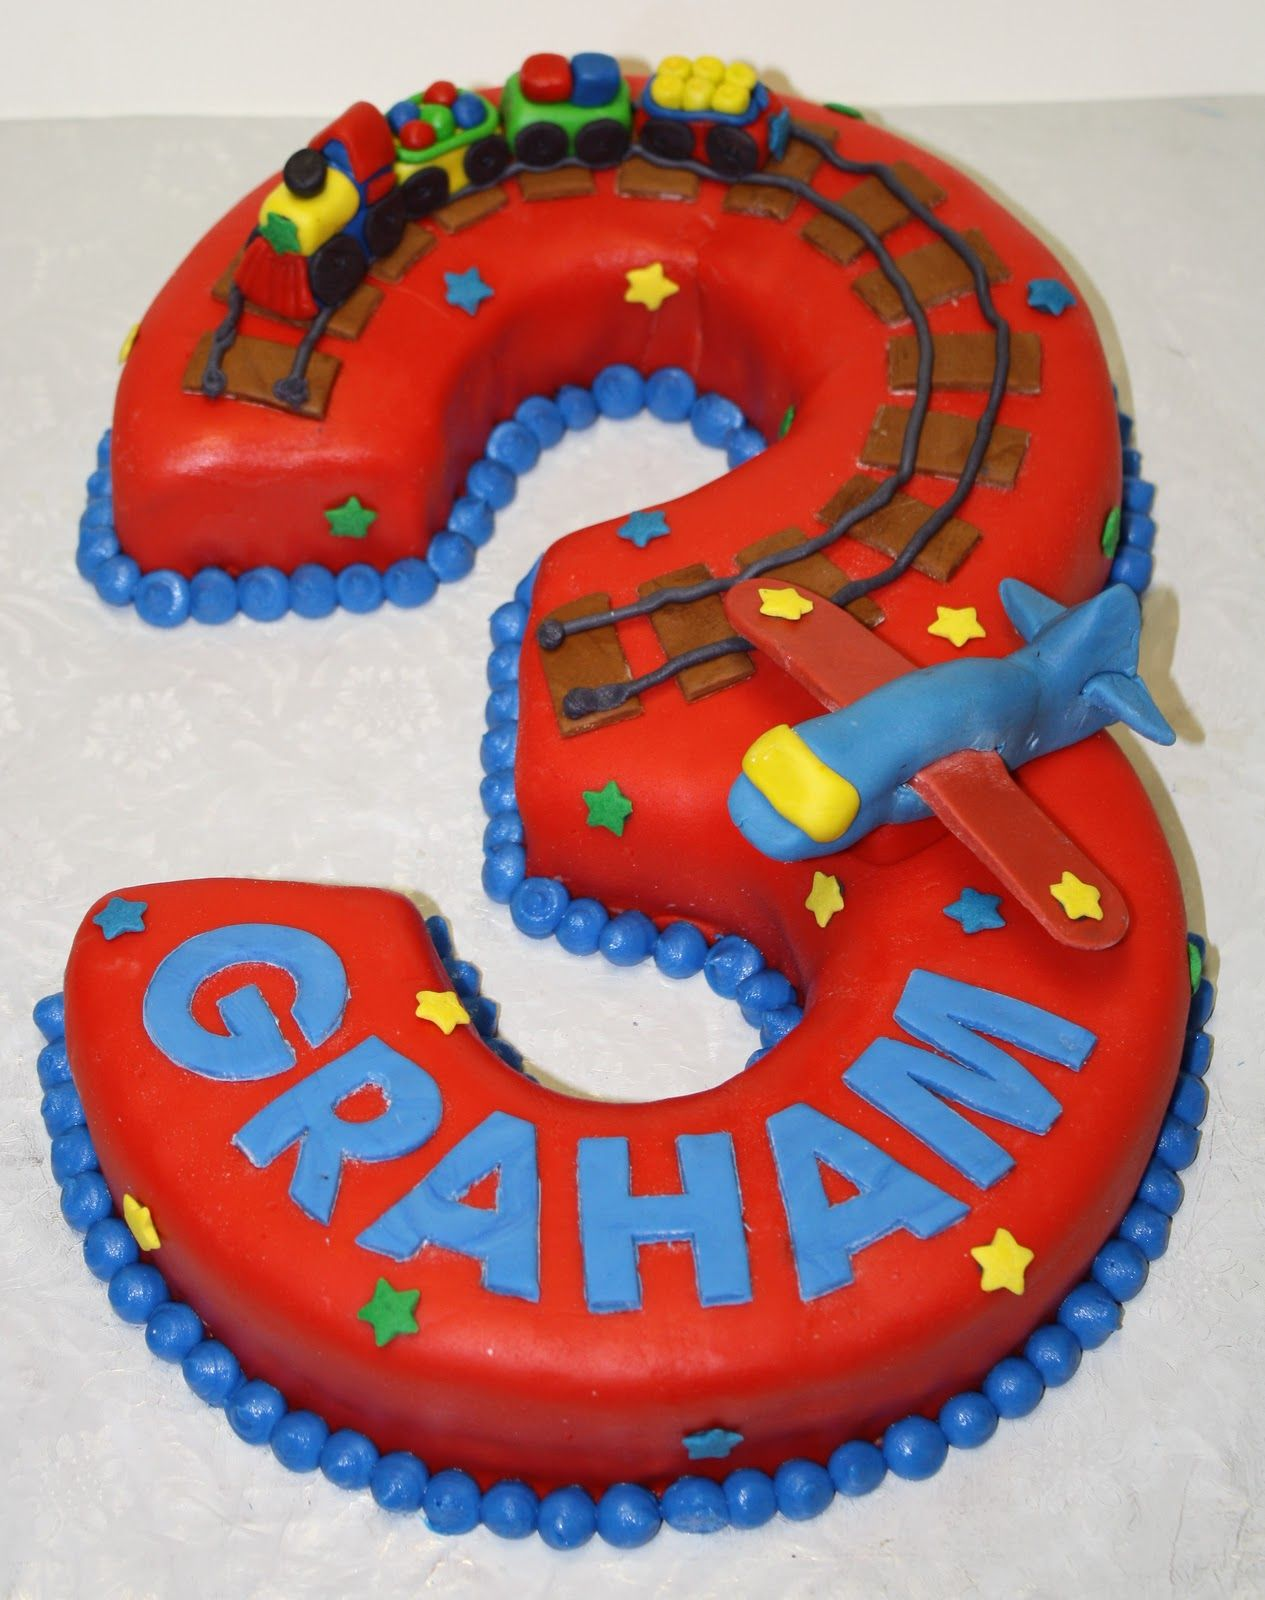 Thinking Cakes In Shapes Of Numbers Might Be Just The Ticket For Fun